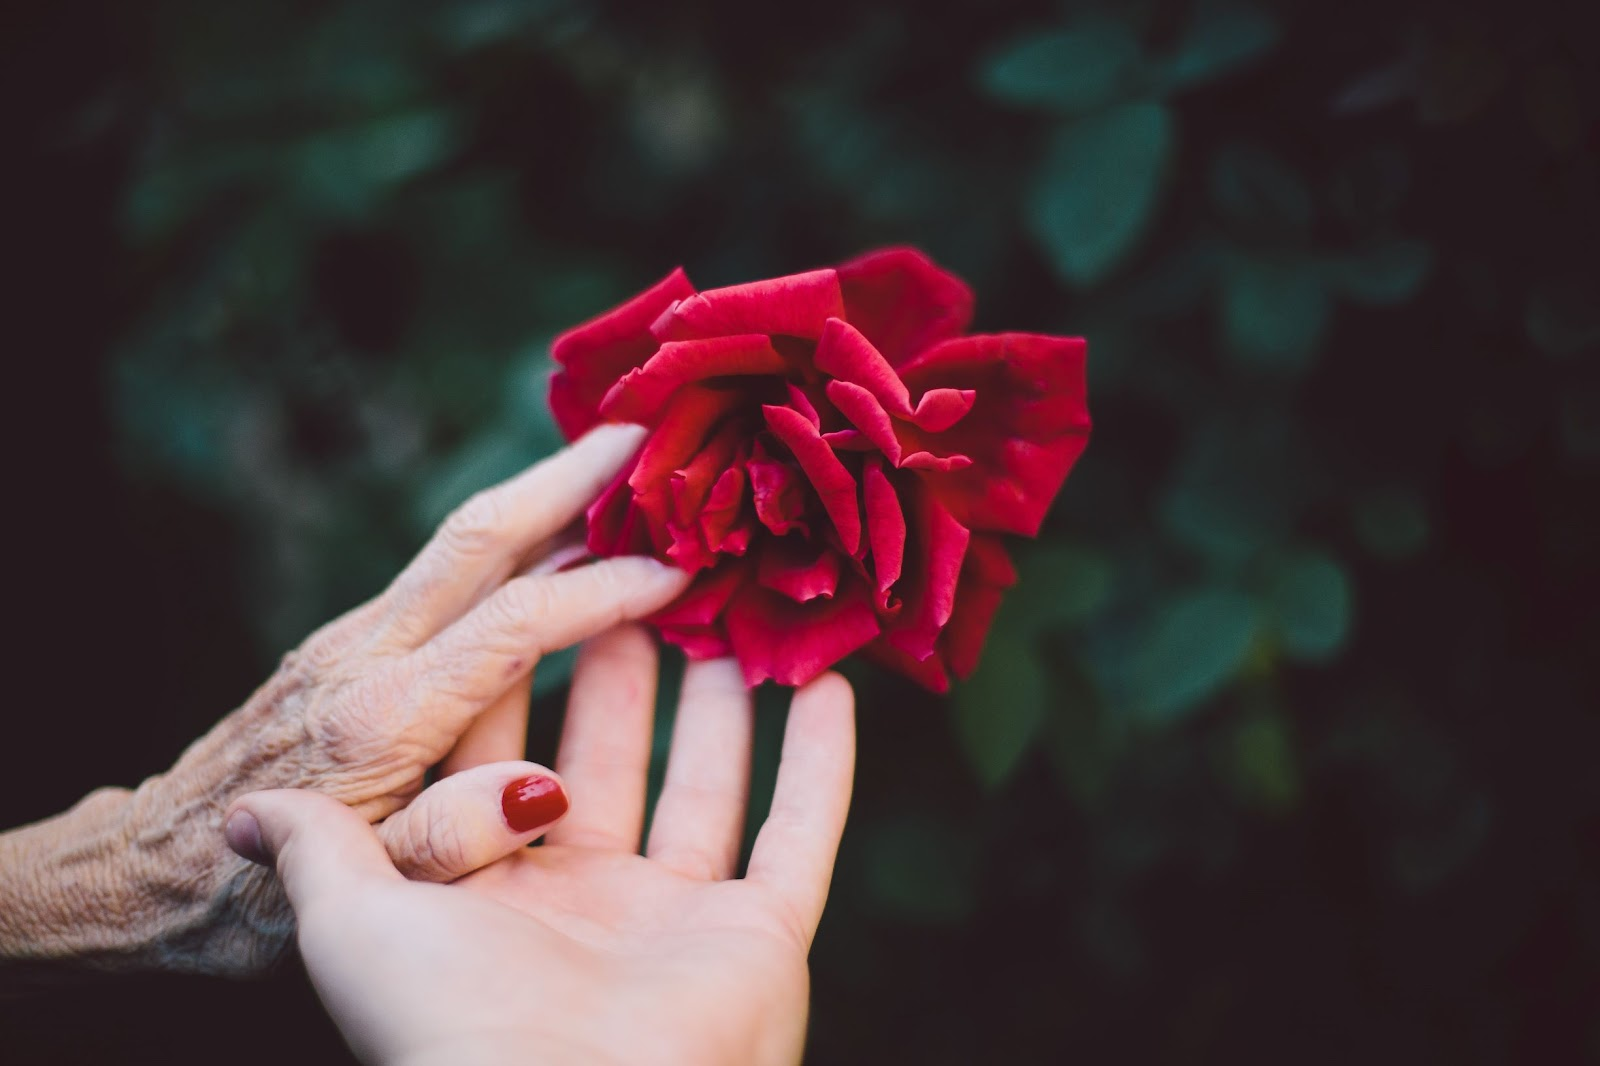 Two hands from two different people touching a flower